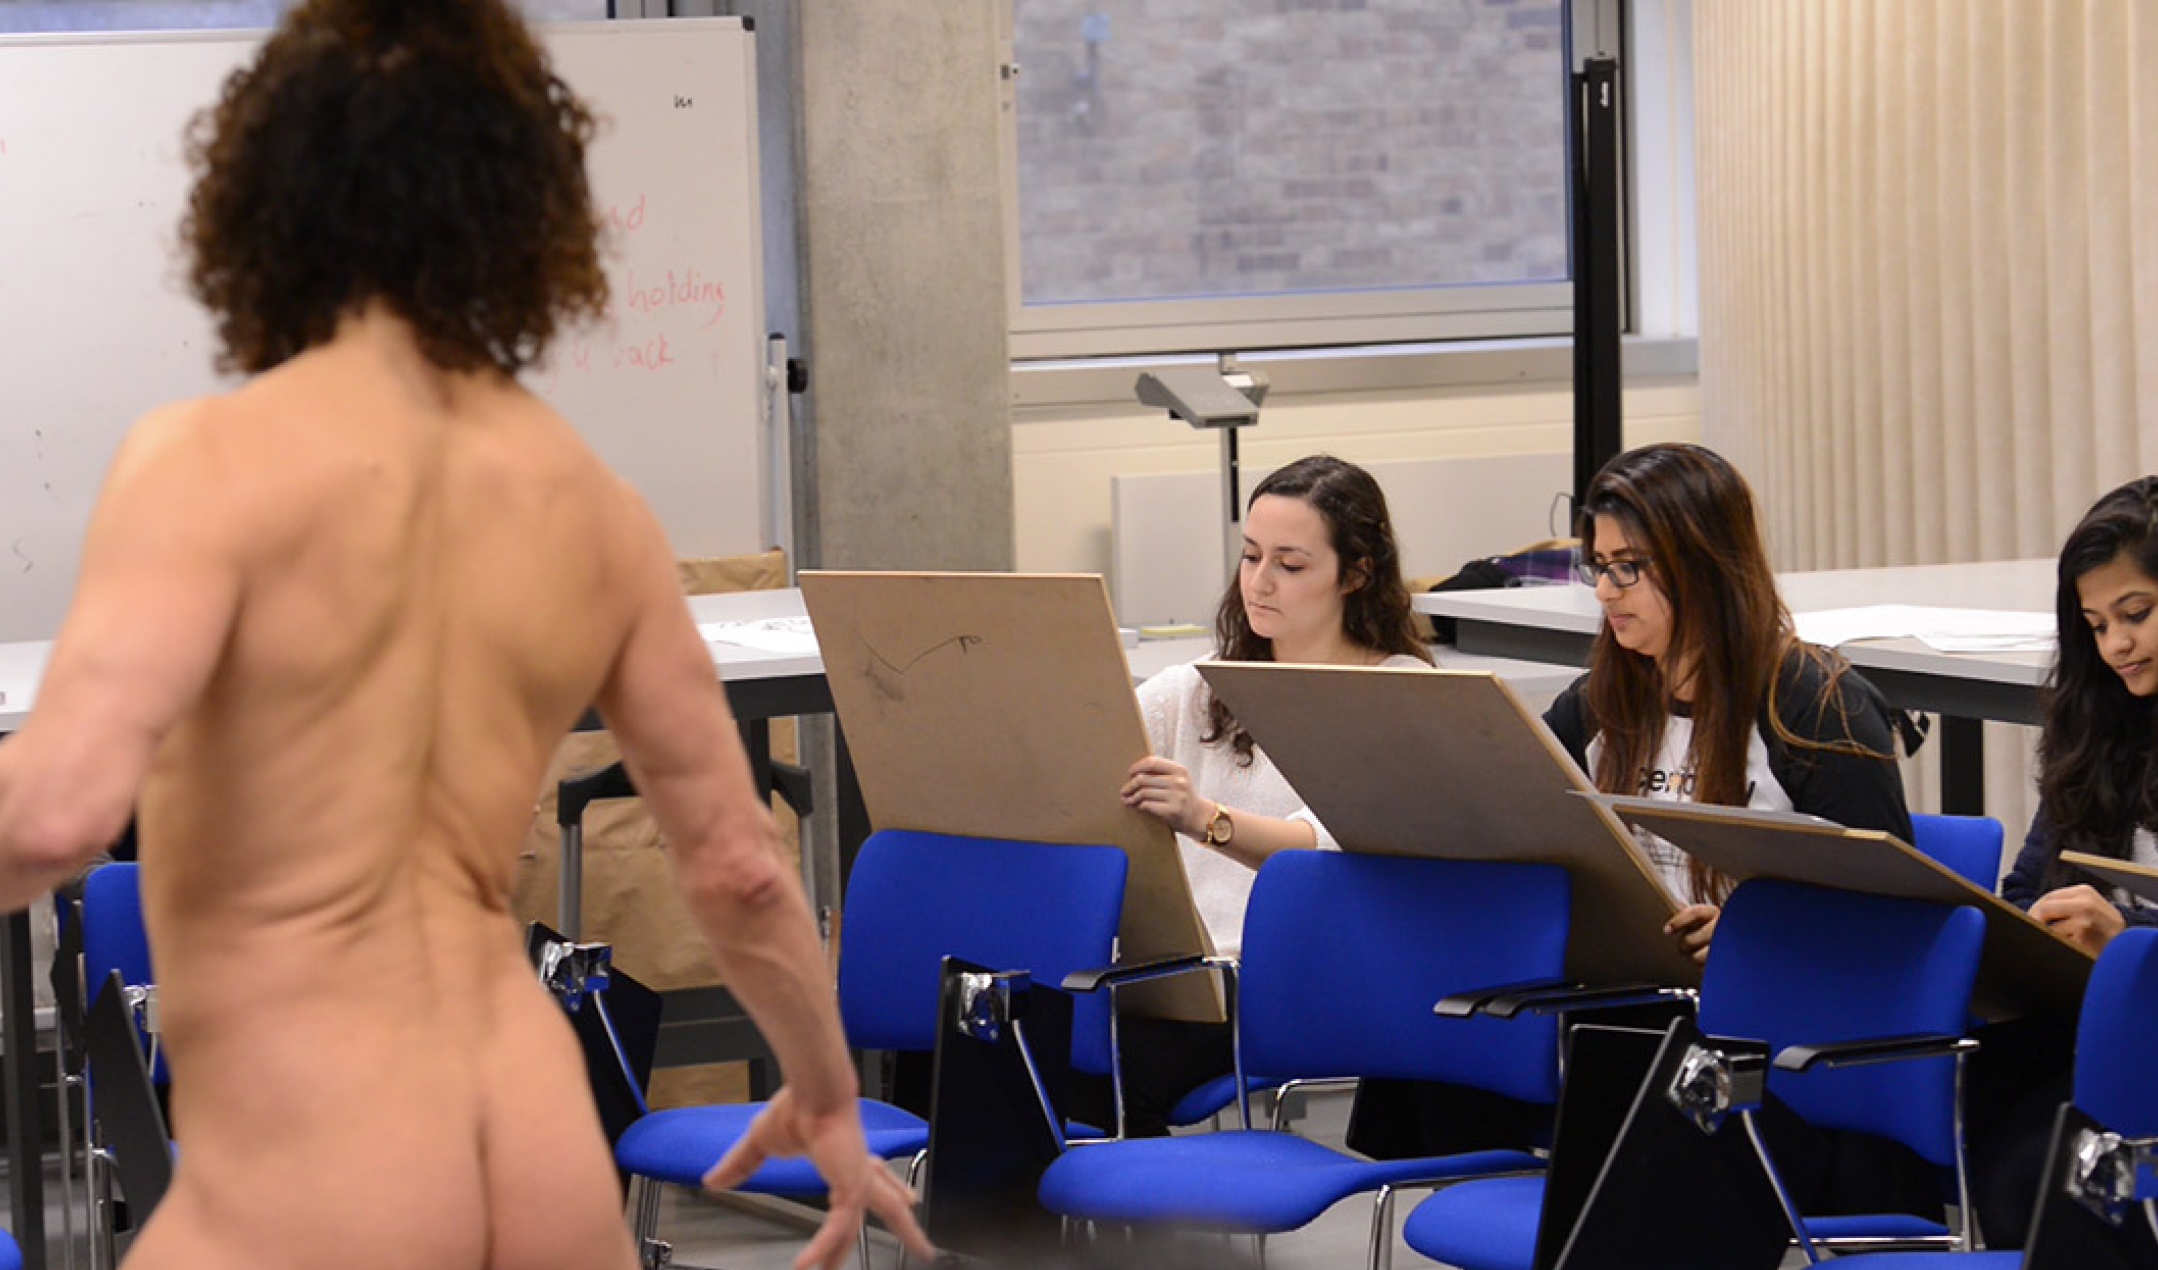 Enhancing understanding of the body in an optional life drawing class.